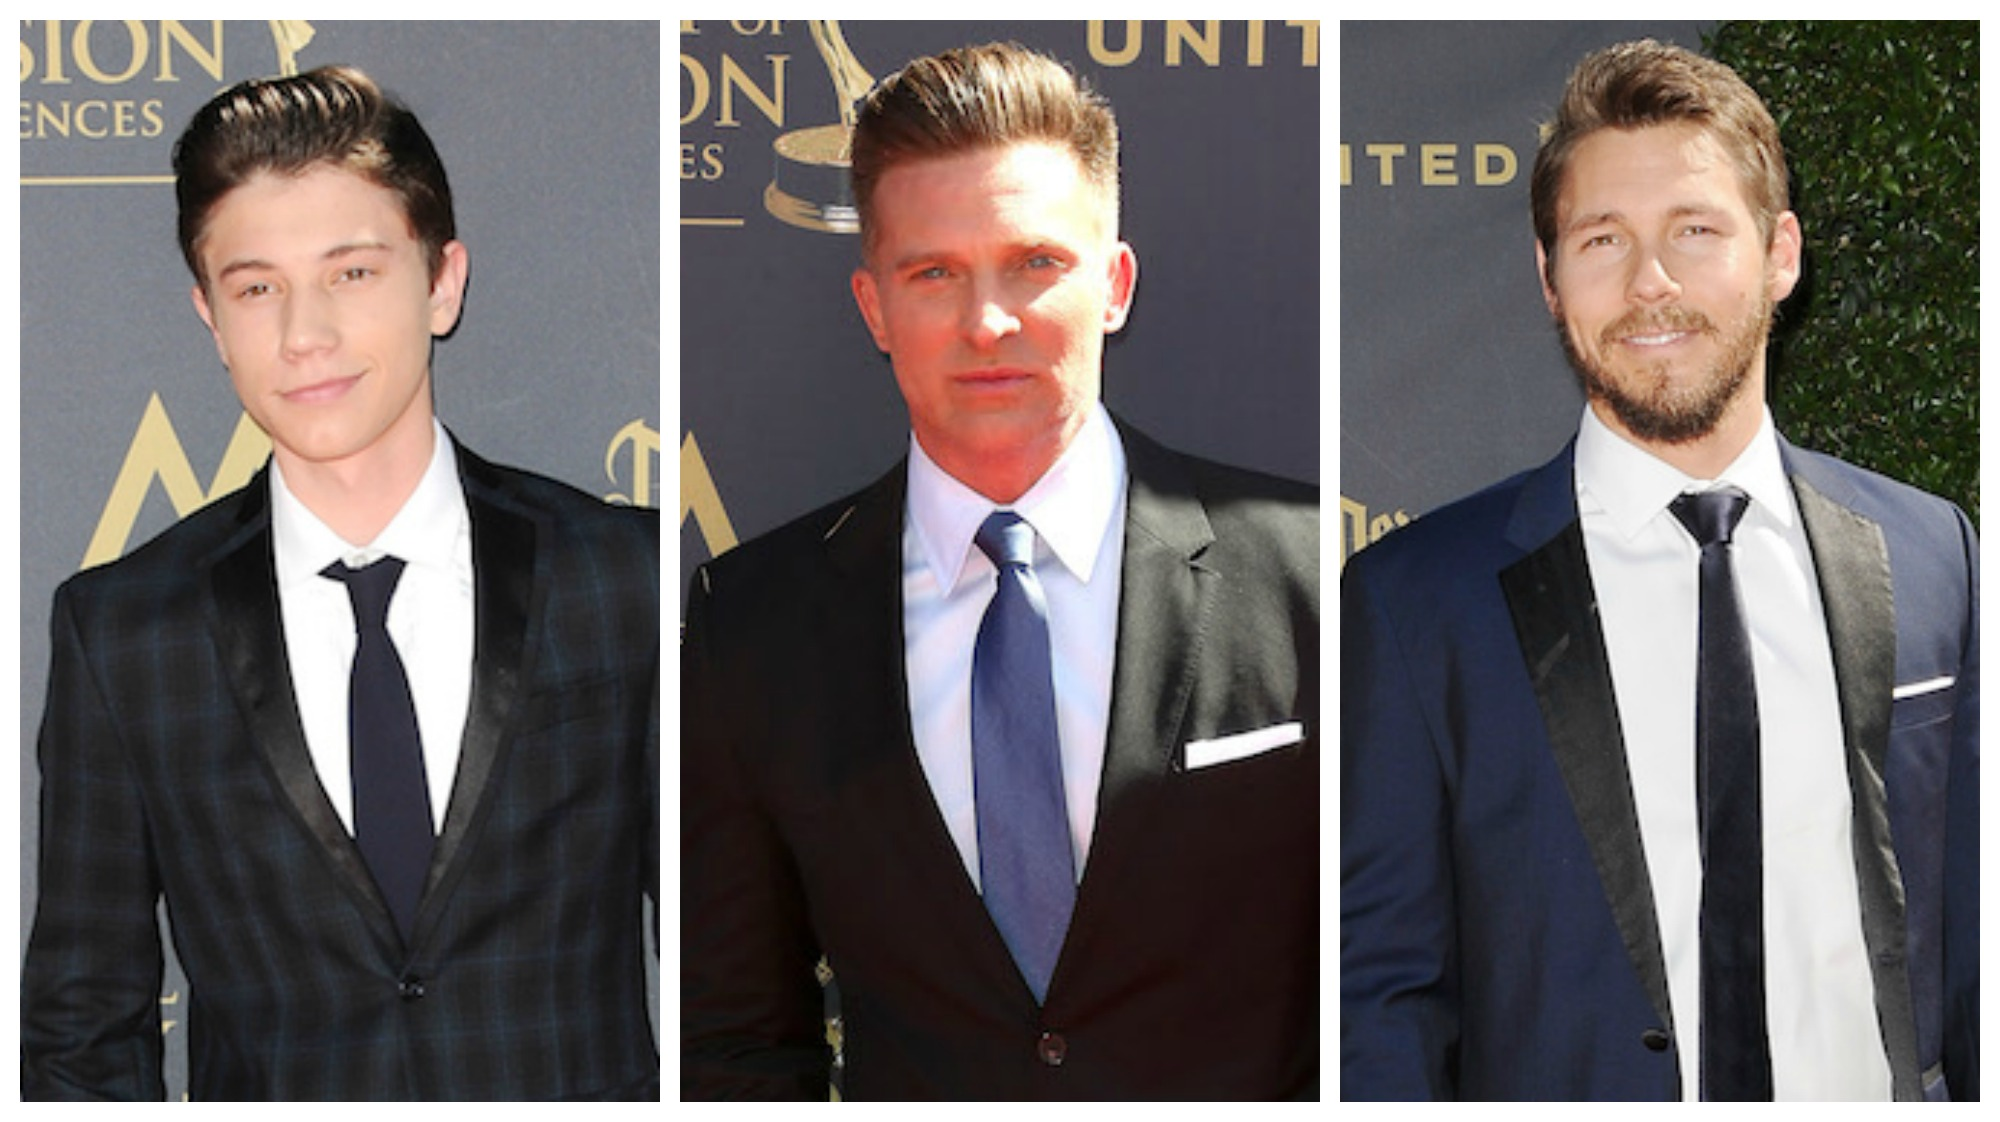 2017 Daytime Emmys Men CBS Trio - JPI/Getty